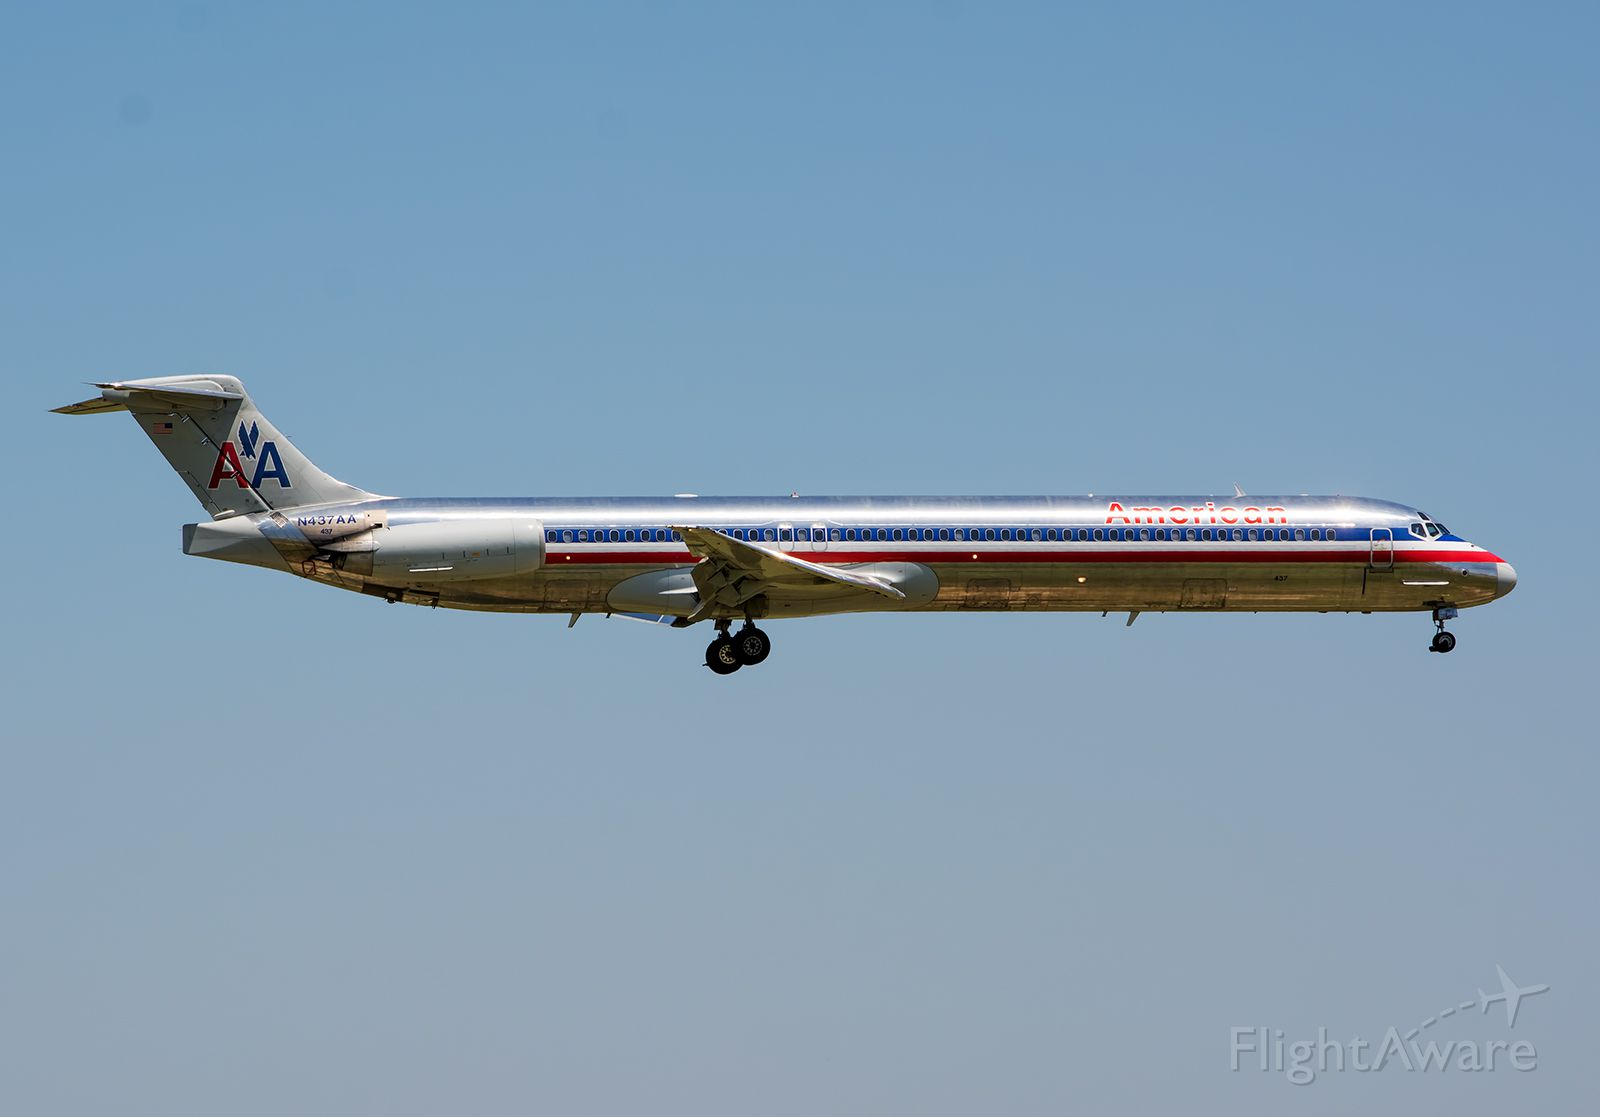 McDonnell Douglas MD-80 (N437AA) - 07/24/2015 American N437AA MD-80 KDFW. Im trying to photograph as many of these old MadDogs as possible because they are being retired daily and will soon be gone from the AA fleet.